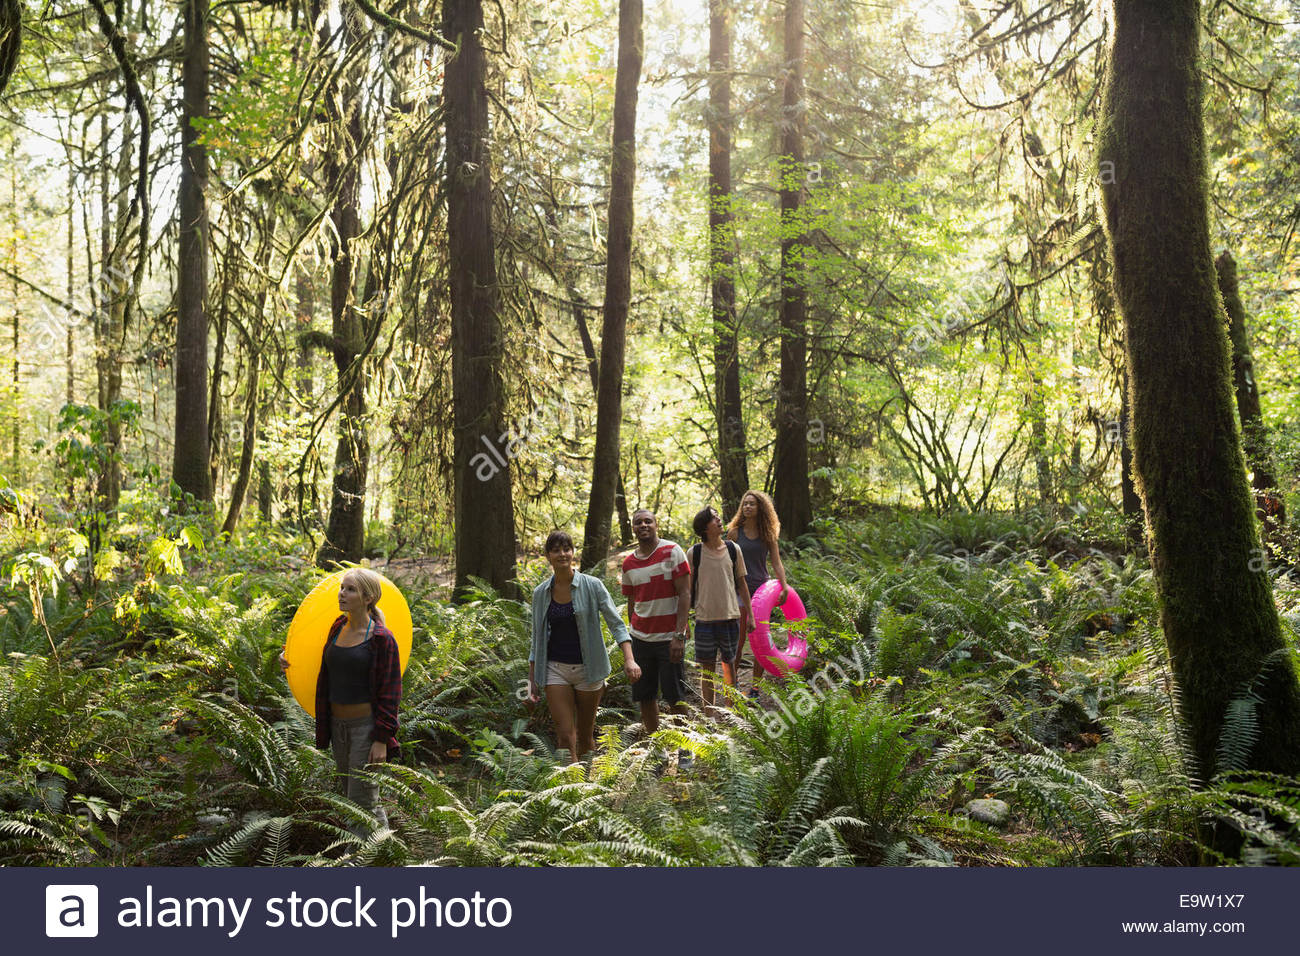 Friends with inflatable rings walking in woods - Stock Image